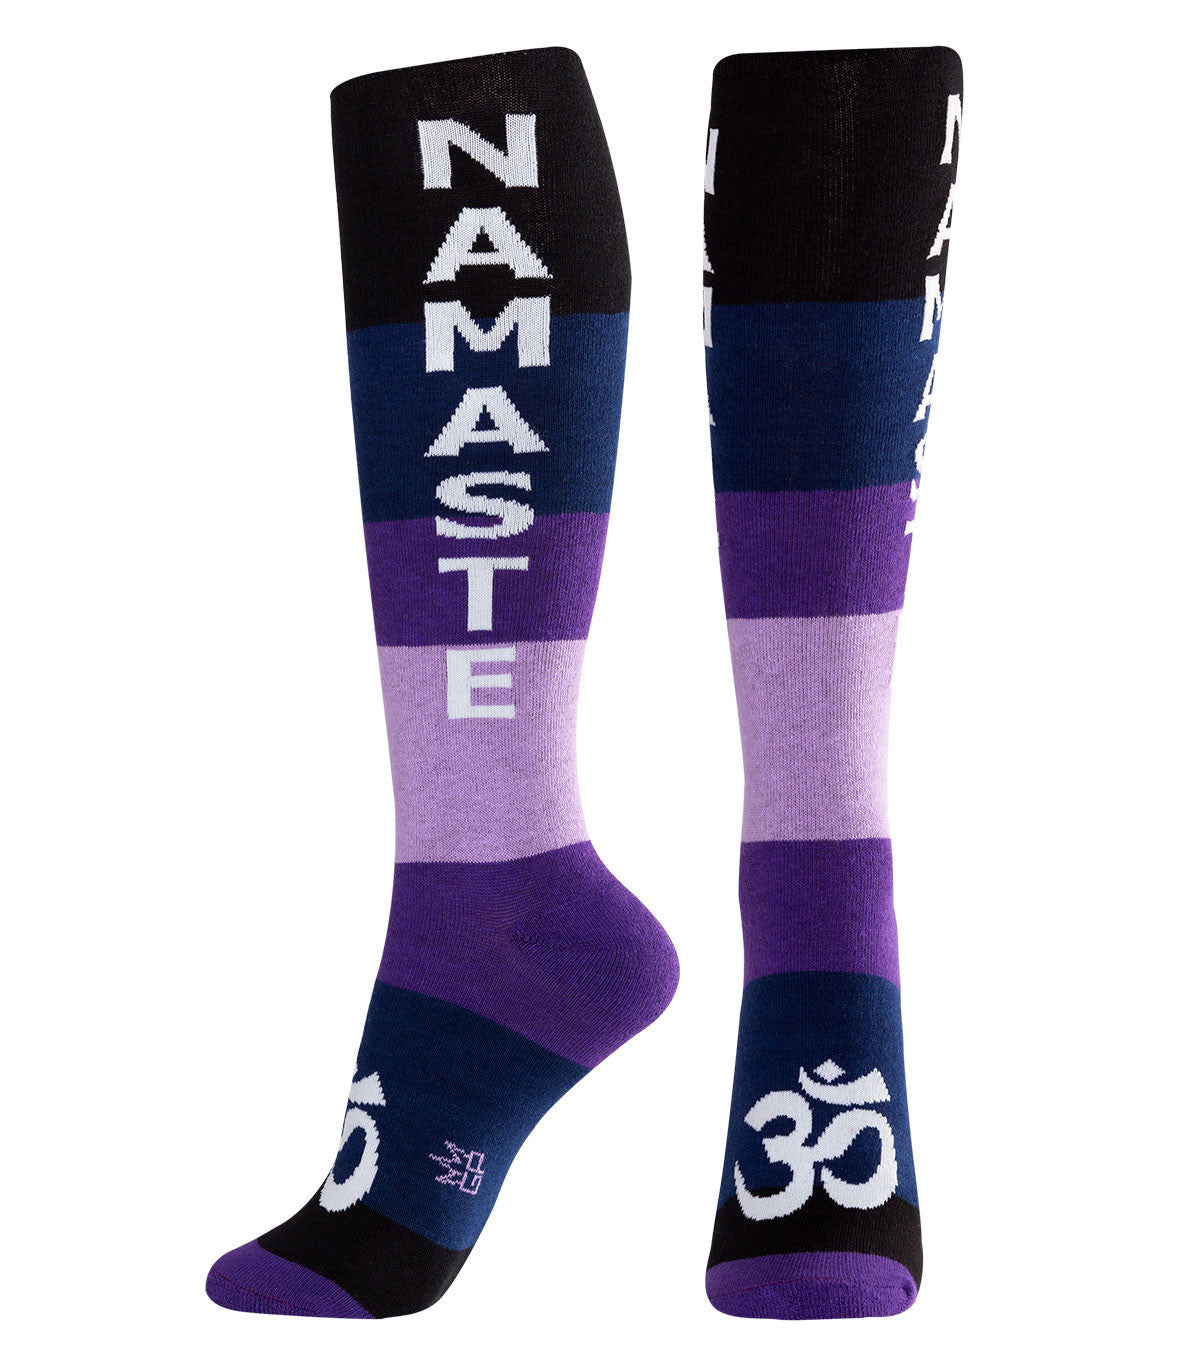 NAMASTE Socks - Navy, Purple, Lavender, Black & White Unisex Dress Knee Socks - Off The Wall Toys and Gifts